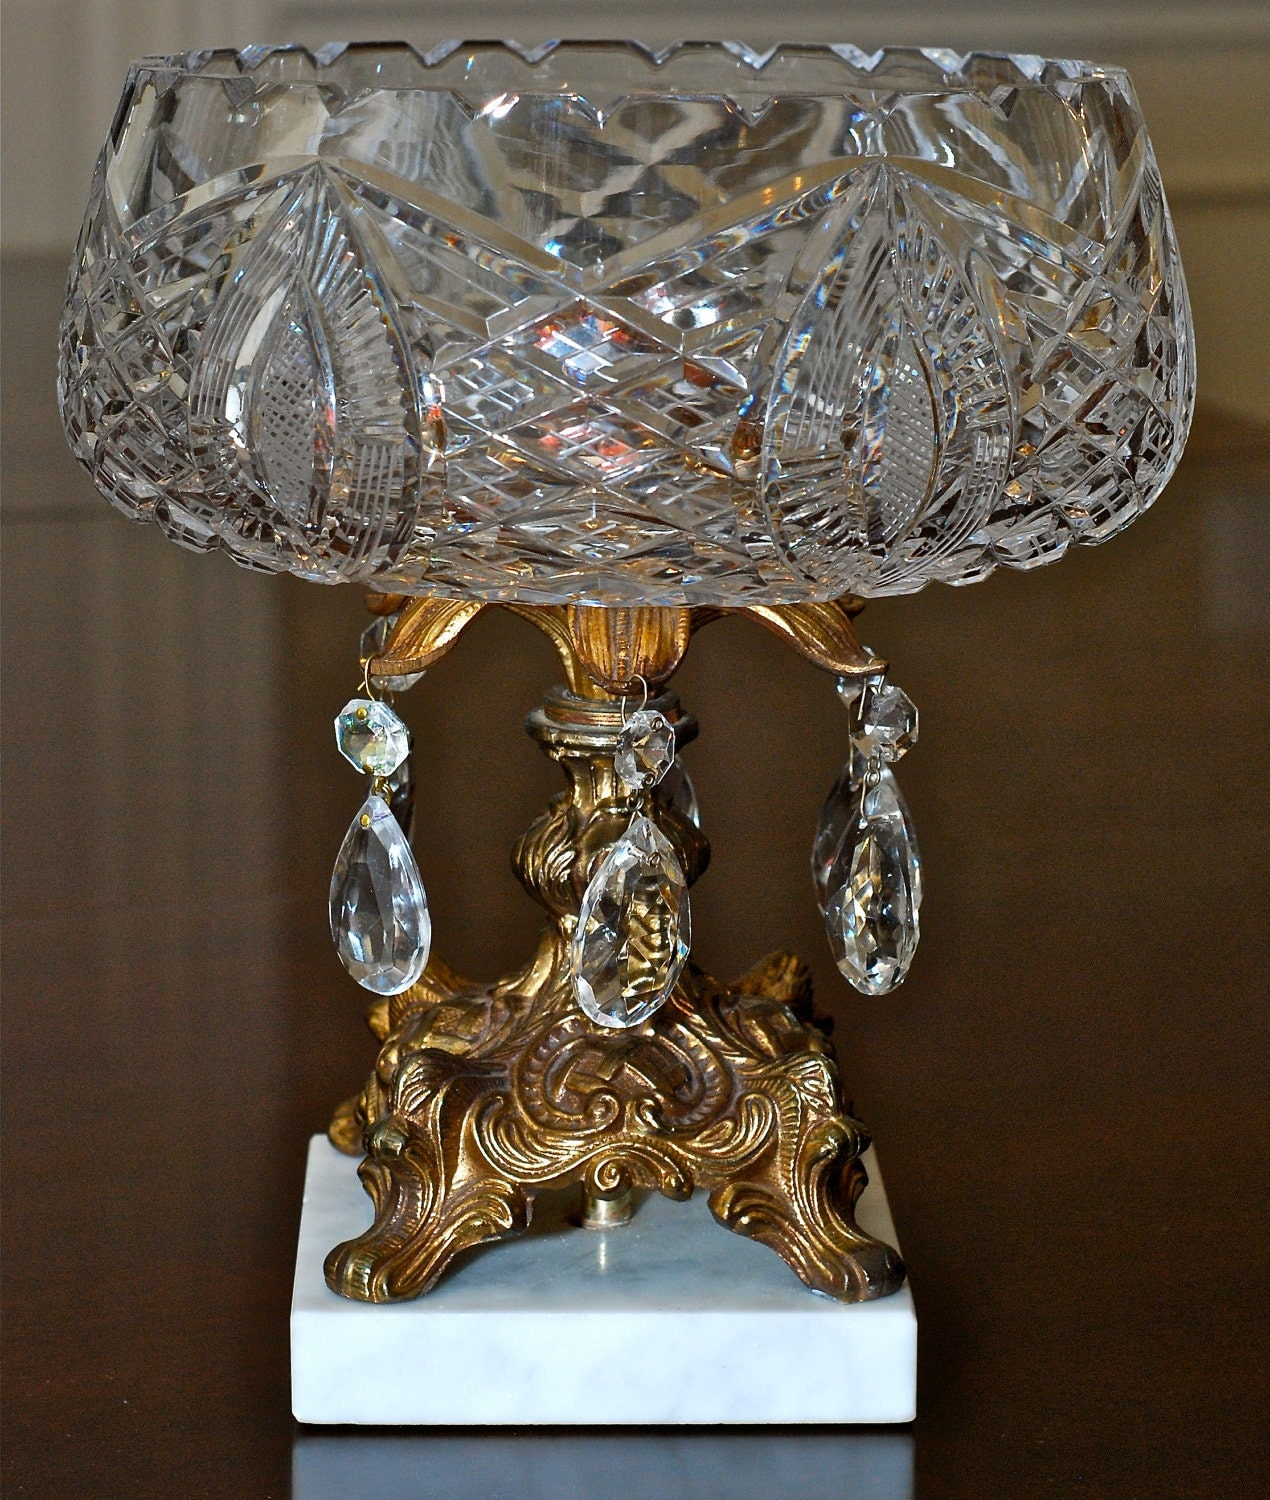 Vintage Cut Crystal Centerpiece Bowl With Brass Finished